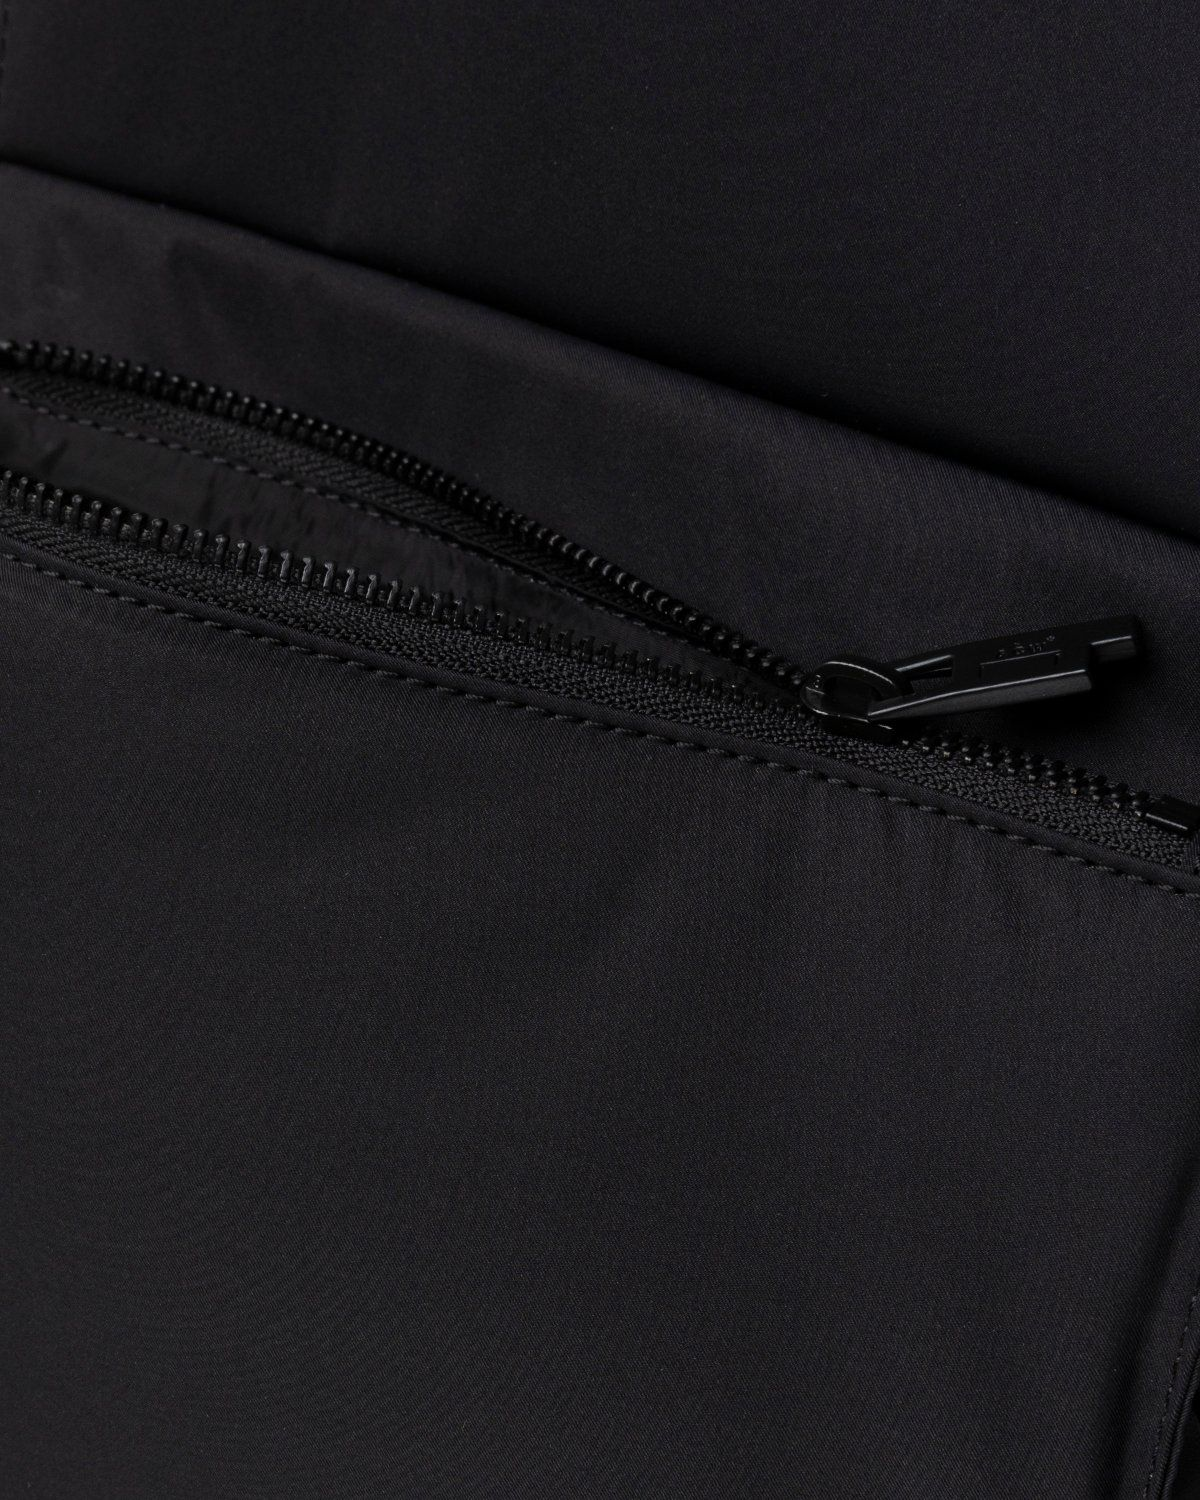 A-COLD-WALL* – Convect Holster Bag Black - Image 6